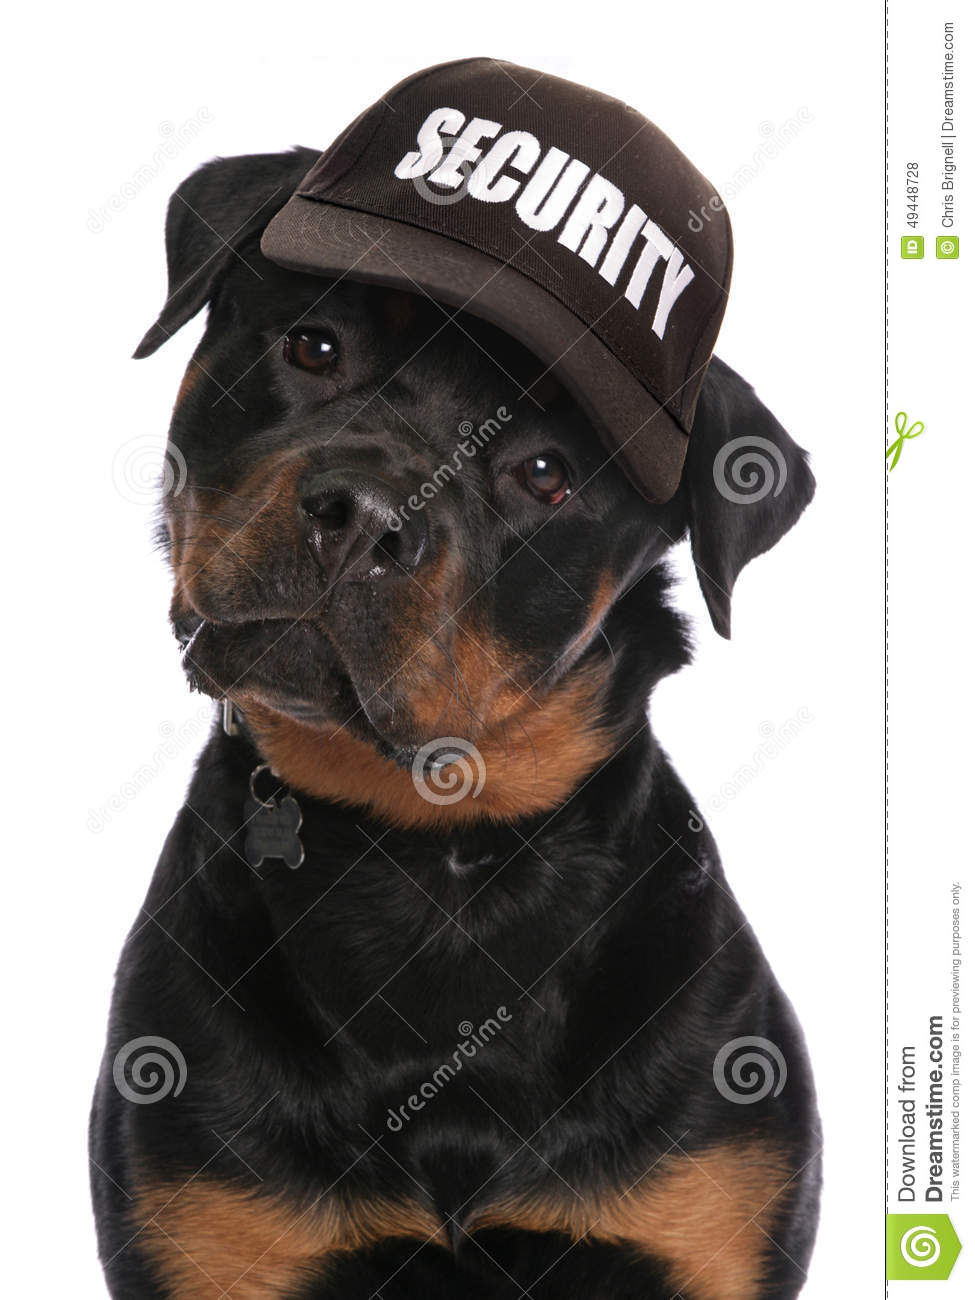 Rottweiler Security Stock Photo Image 49448728